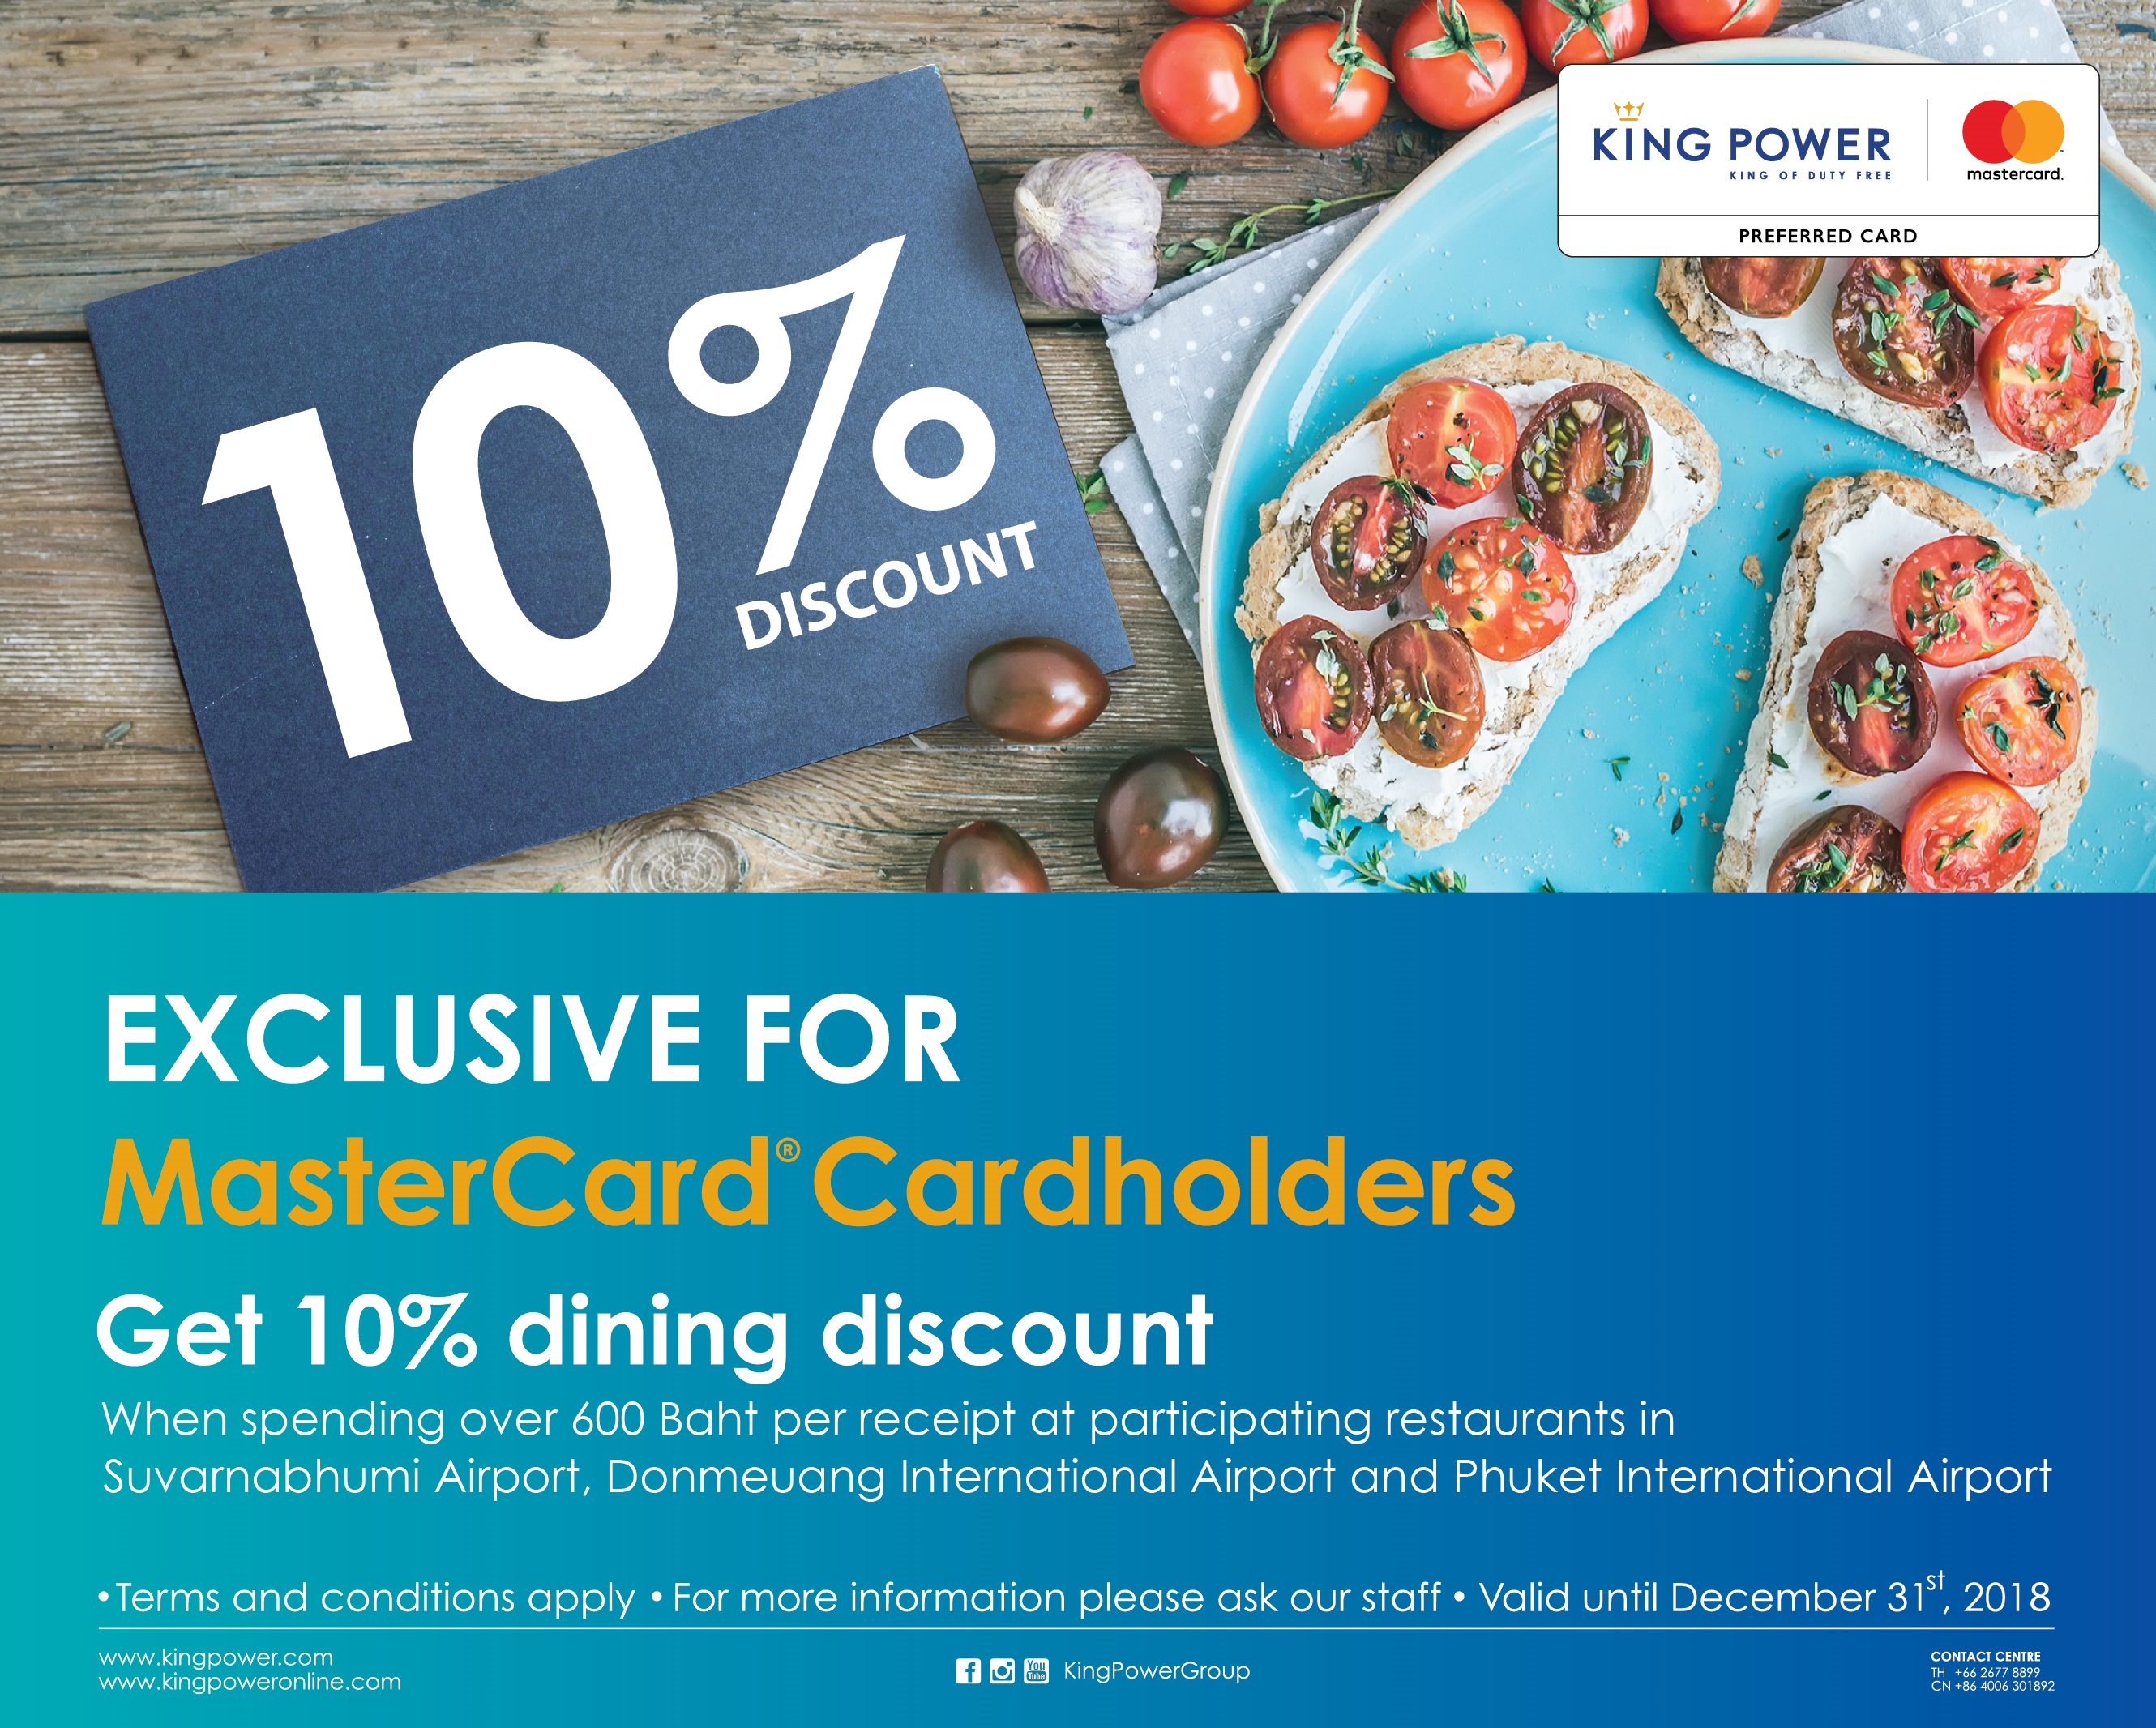 EXCLUSIVE for MasterCard Cardholders